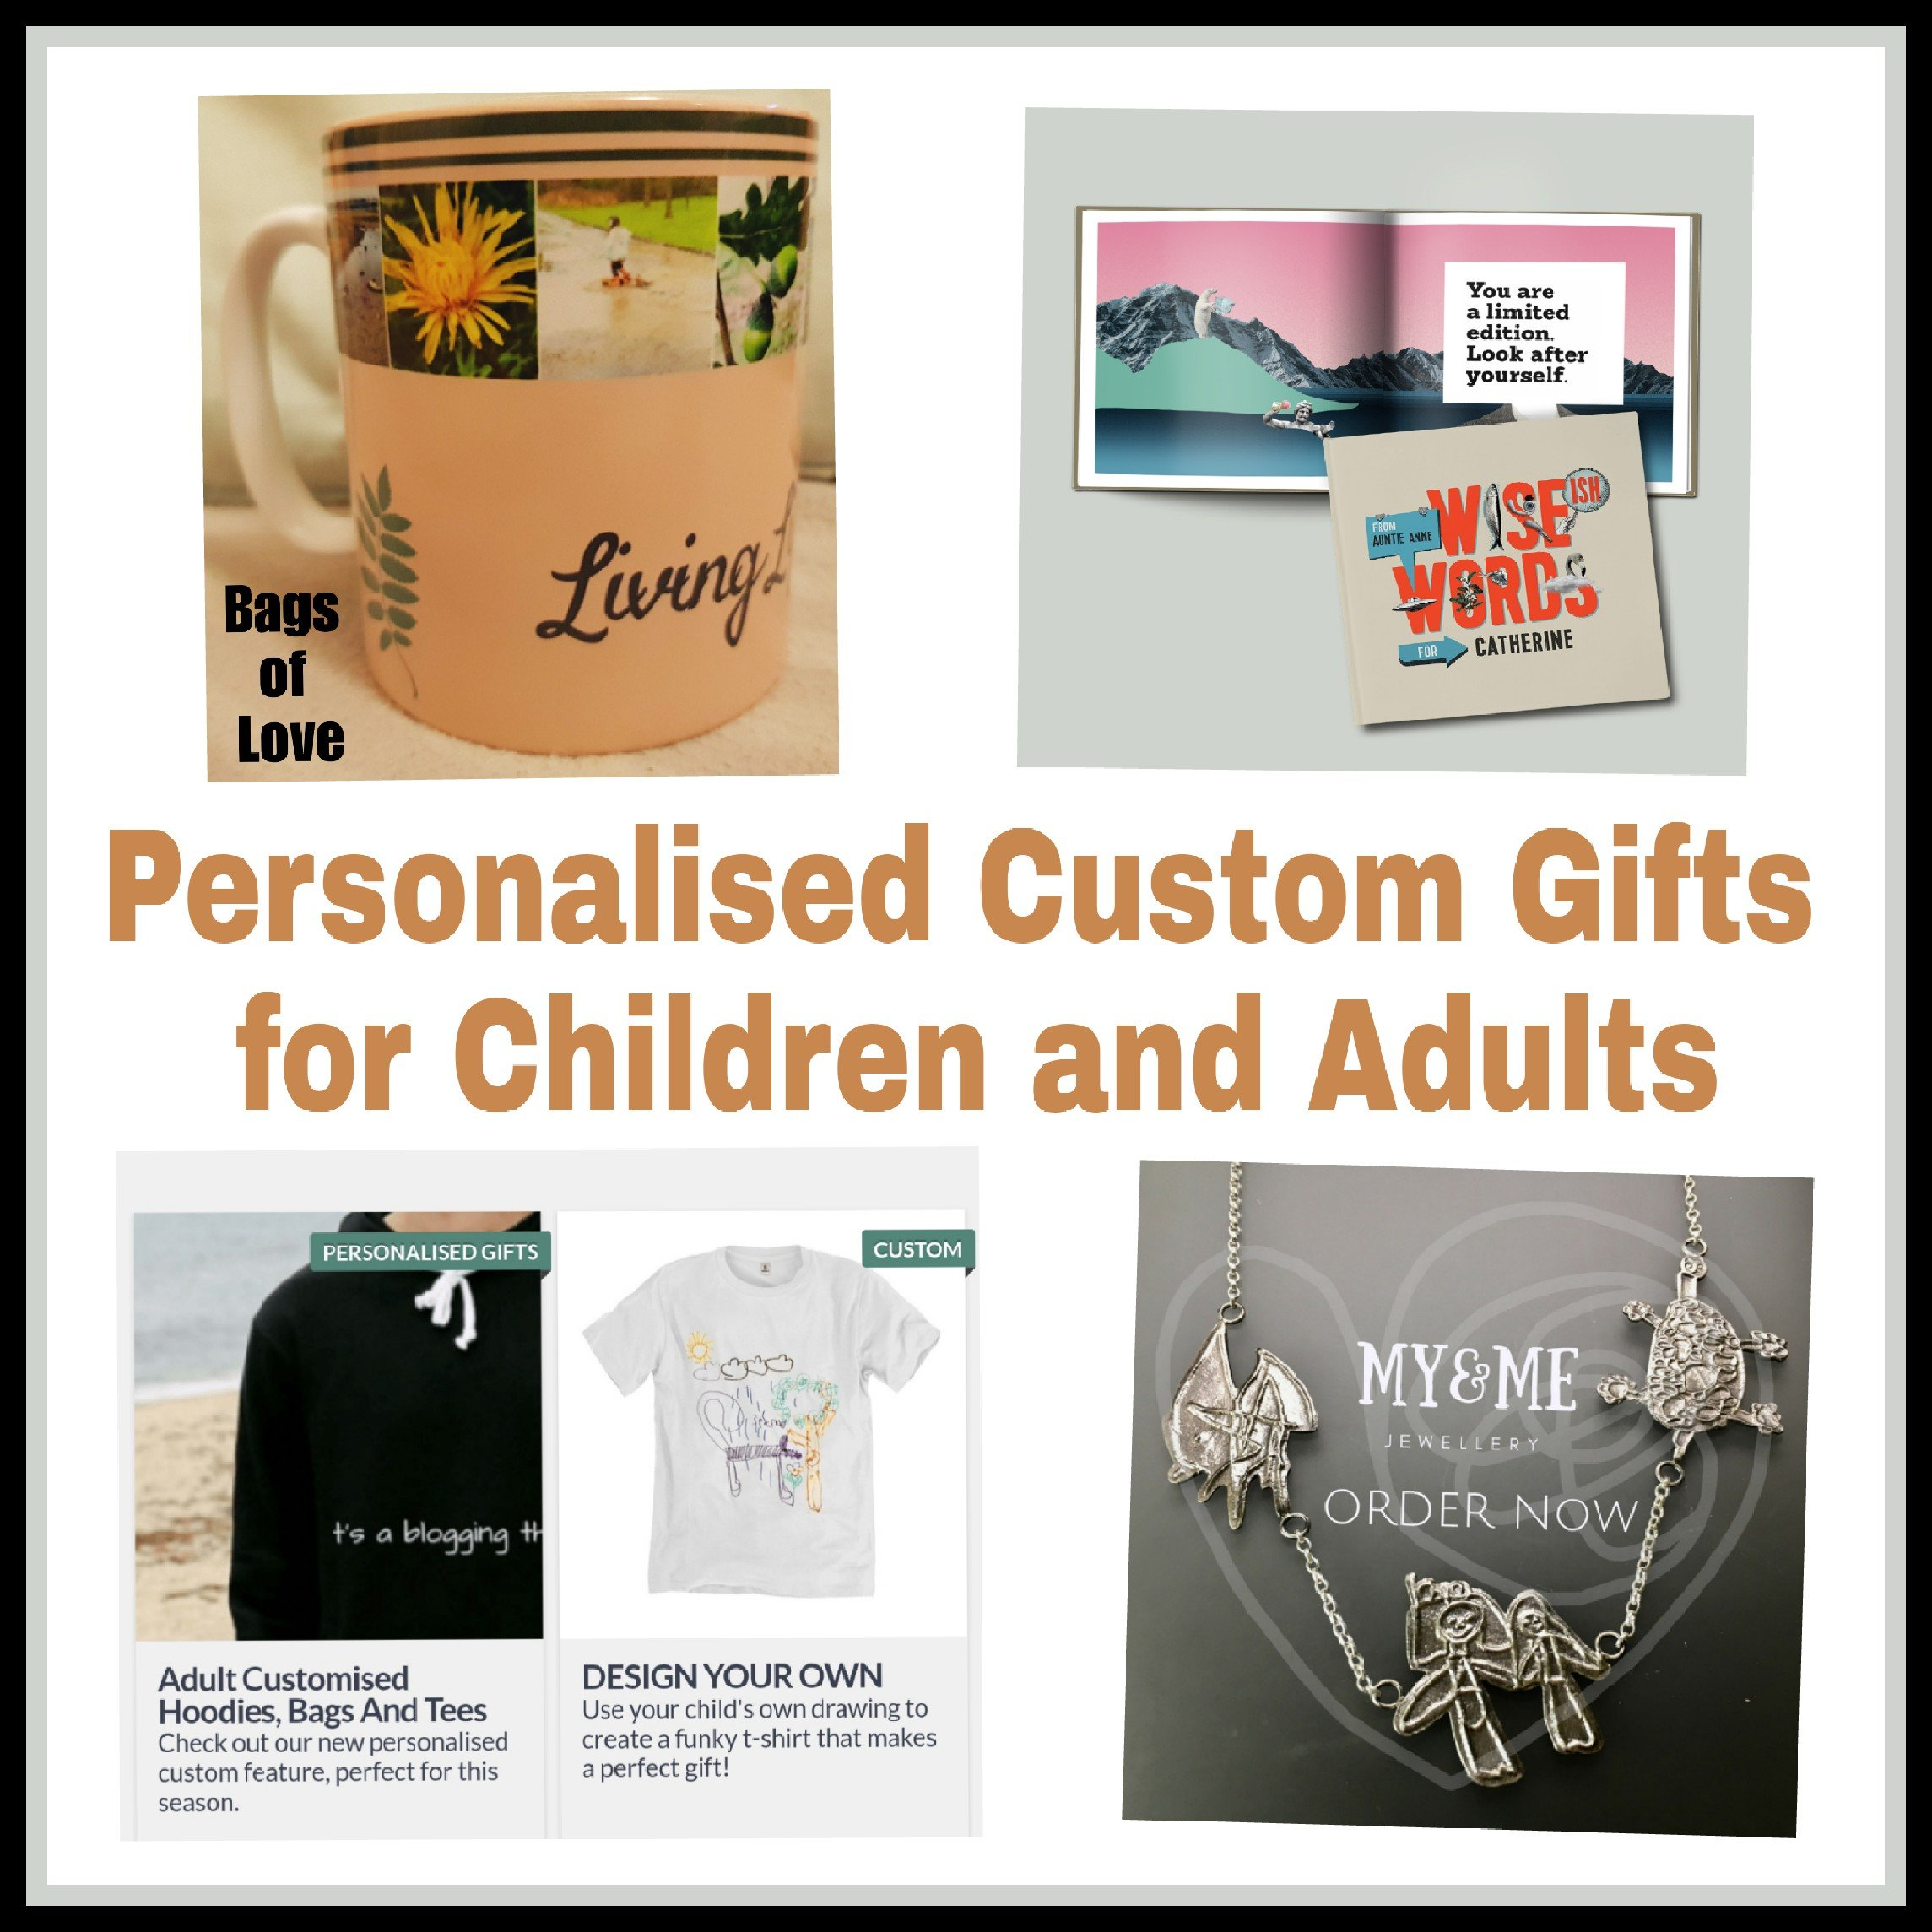 Personalised Gift Ideas A Creative Gift Guide for Adults and